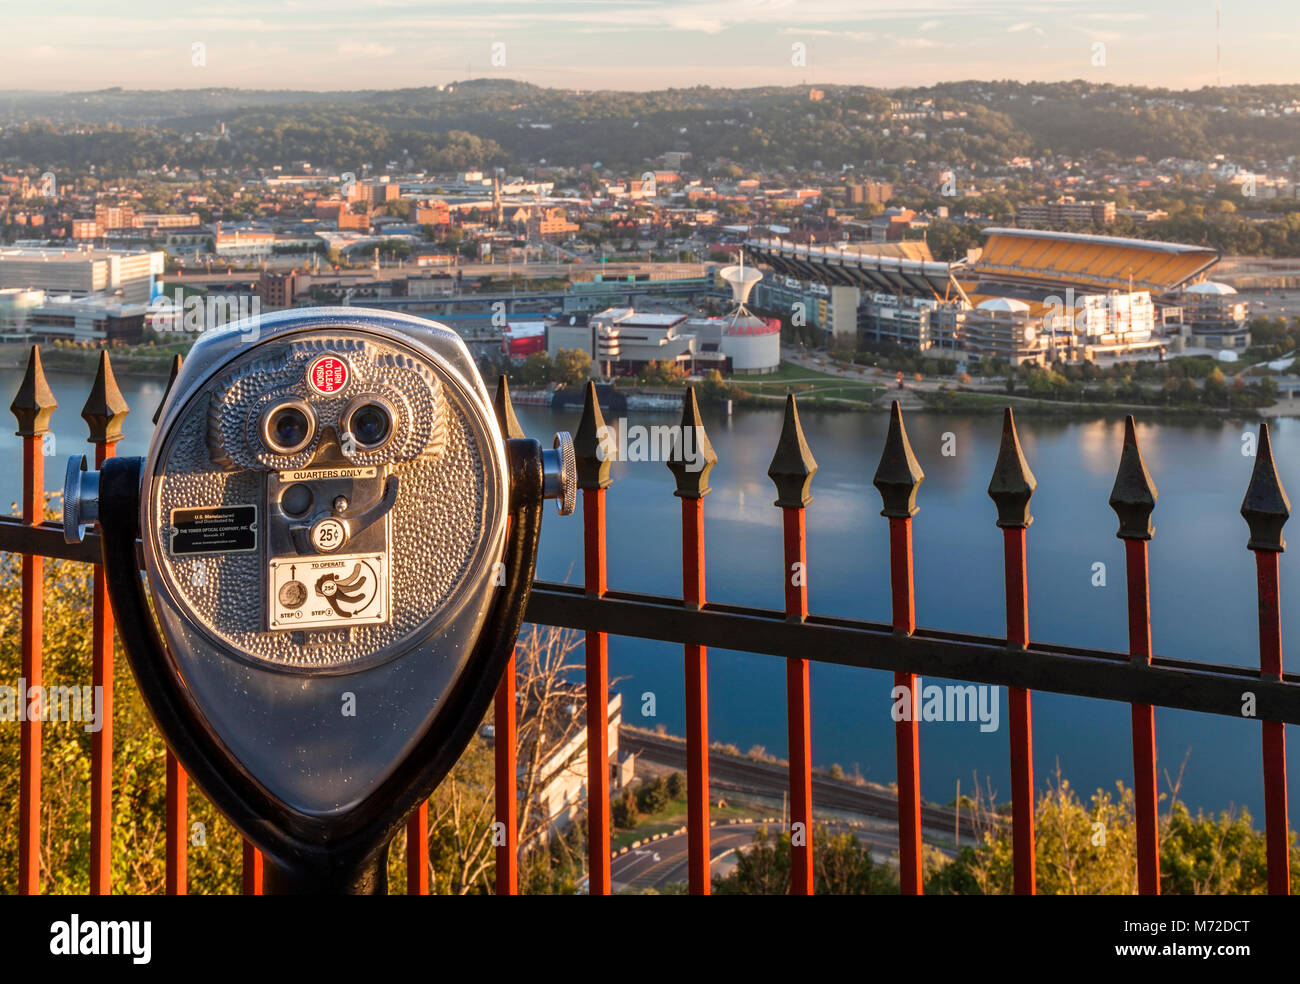 A tower viewer overlooking the city in Pittsburgh, Pennsylvania, USA. - Stock Image